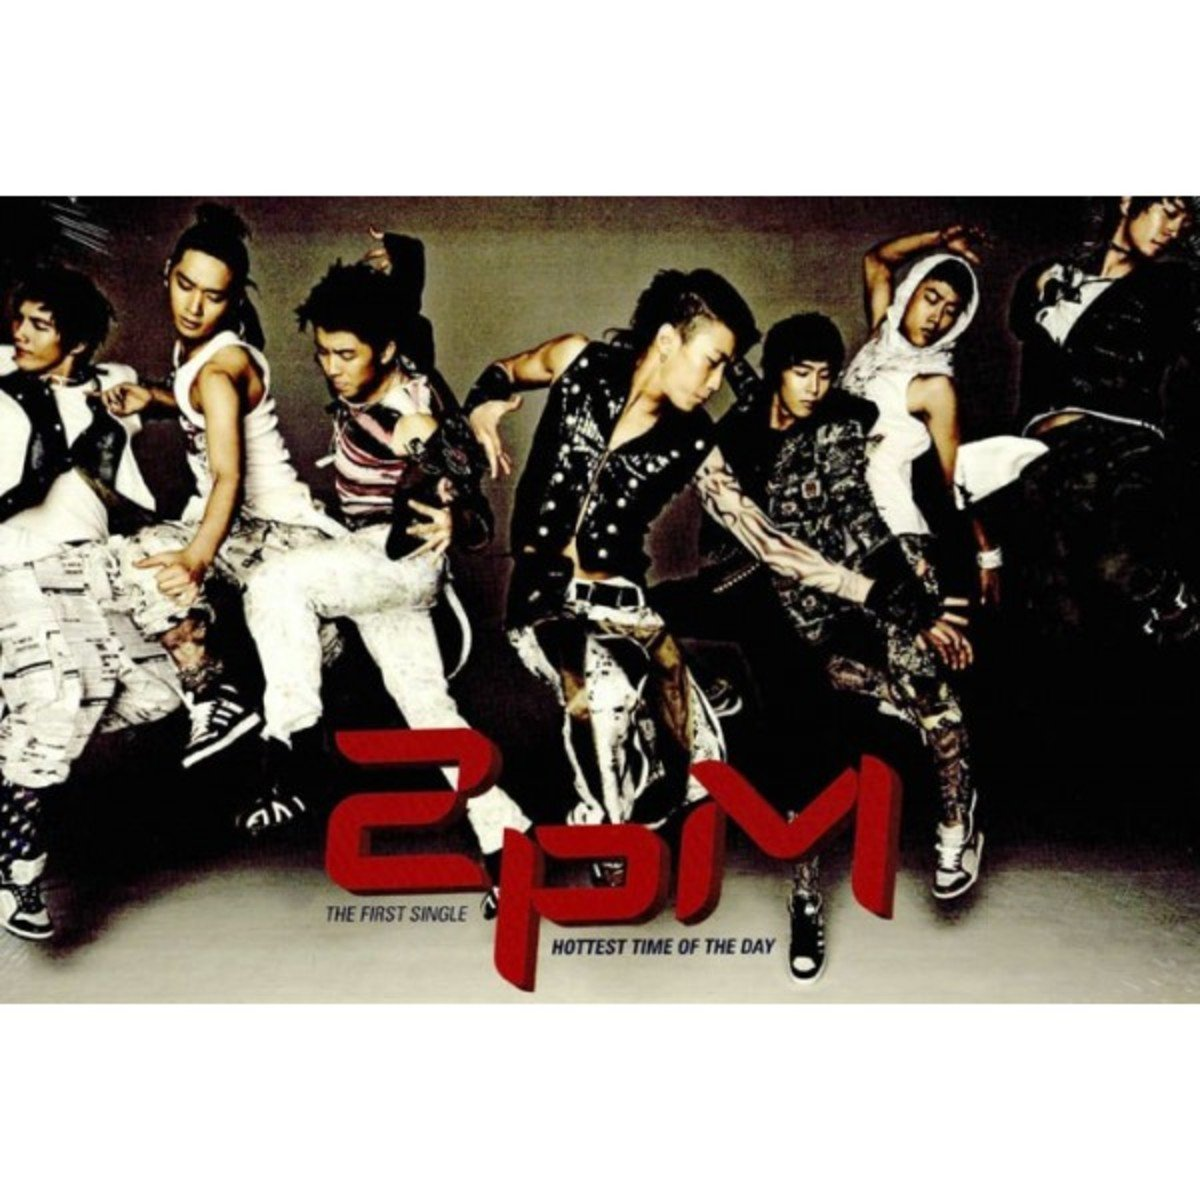 2PM - Single Album Vol.1 [Hottest Time Of The Day]_36339